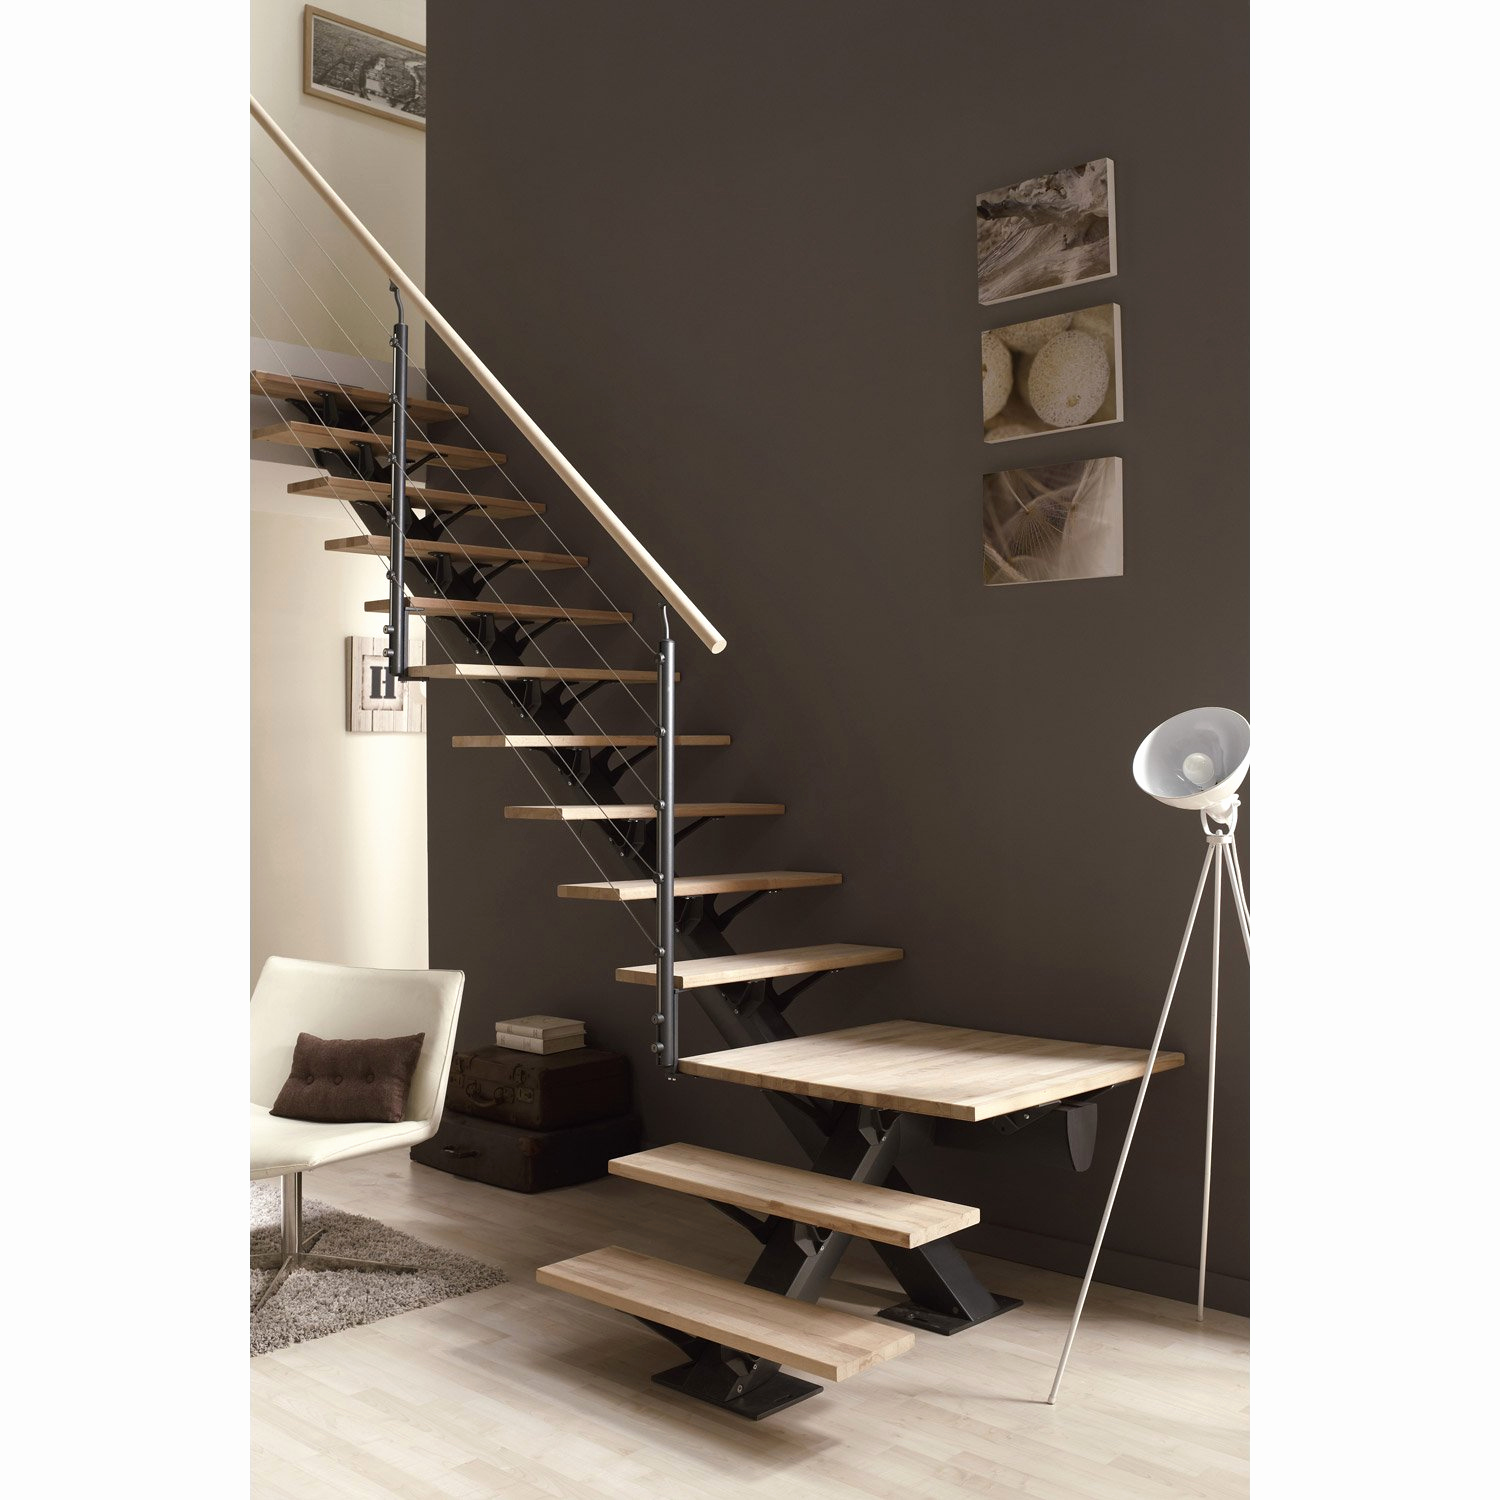 Smart Tiles Leroy Merlin Inspirant Stock Kit Renovation Escalier Leroy Merlin Luxe Balanoire Leroy Merlin